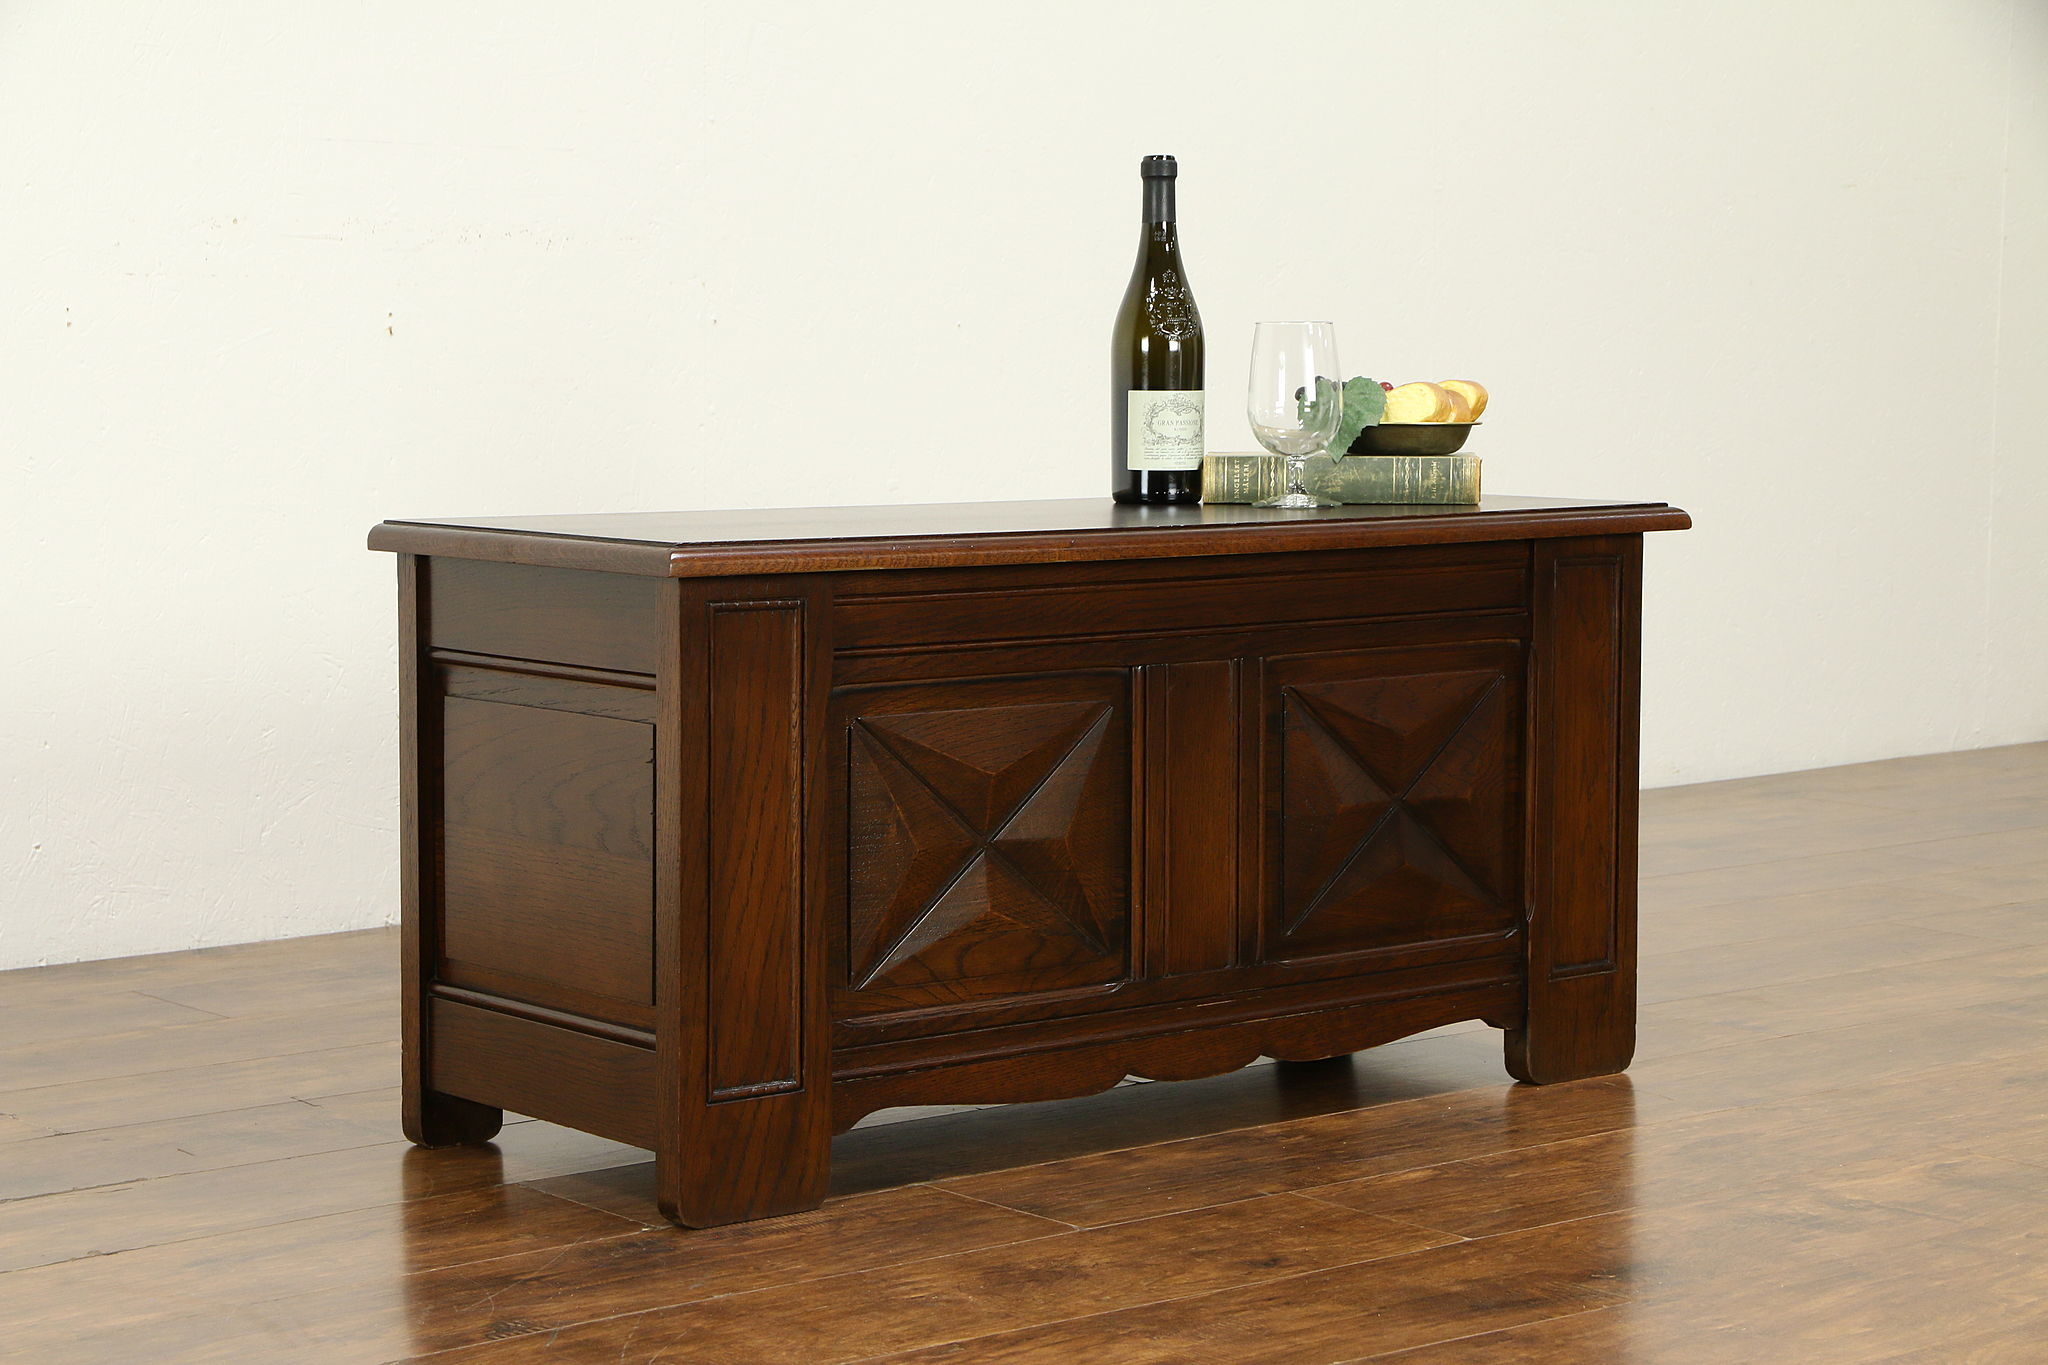 Oak Antique Belgian Trunk Dowry Chest Coffee Table Or Bench 32161